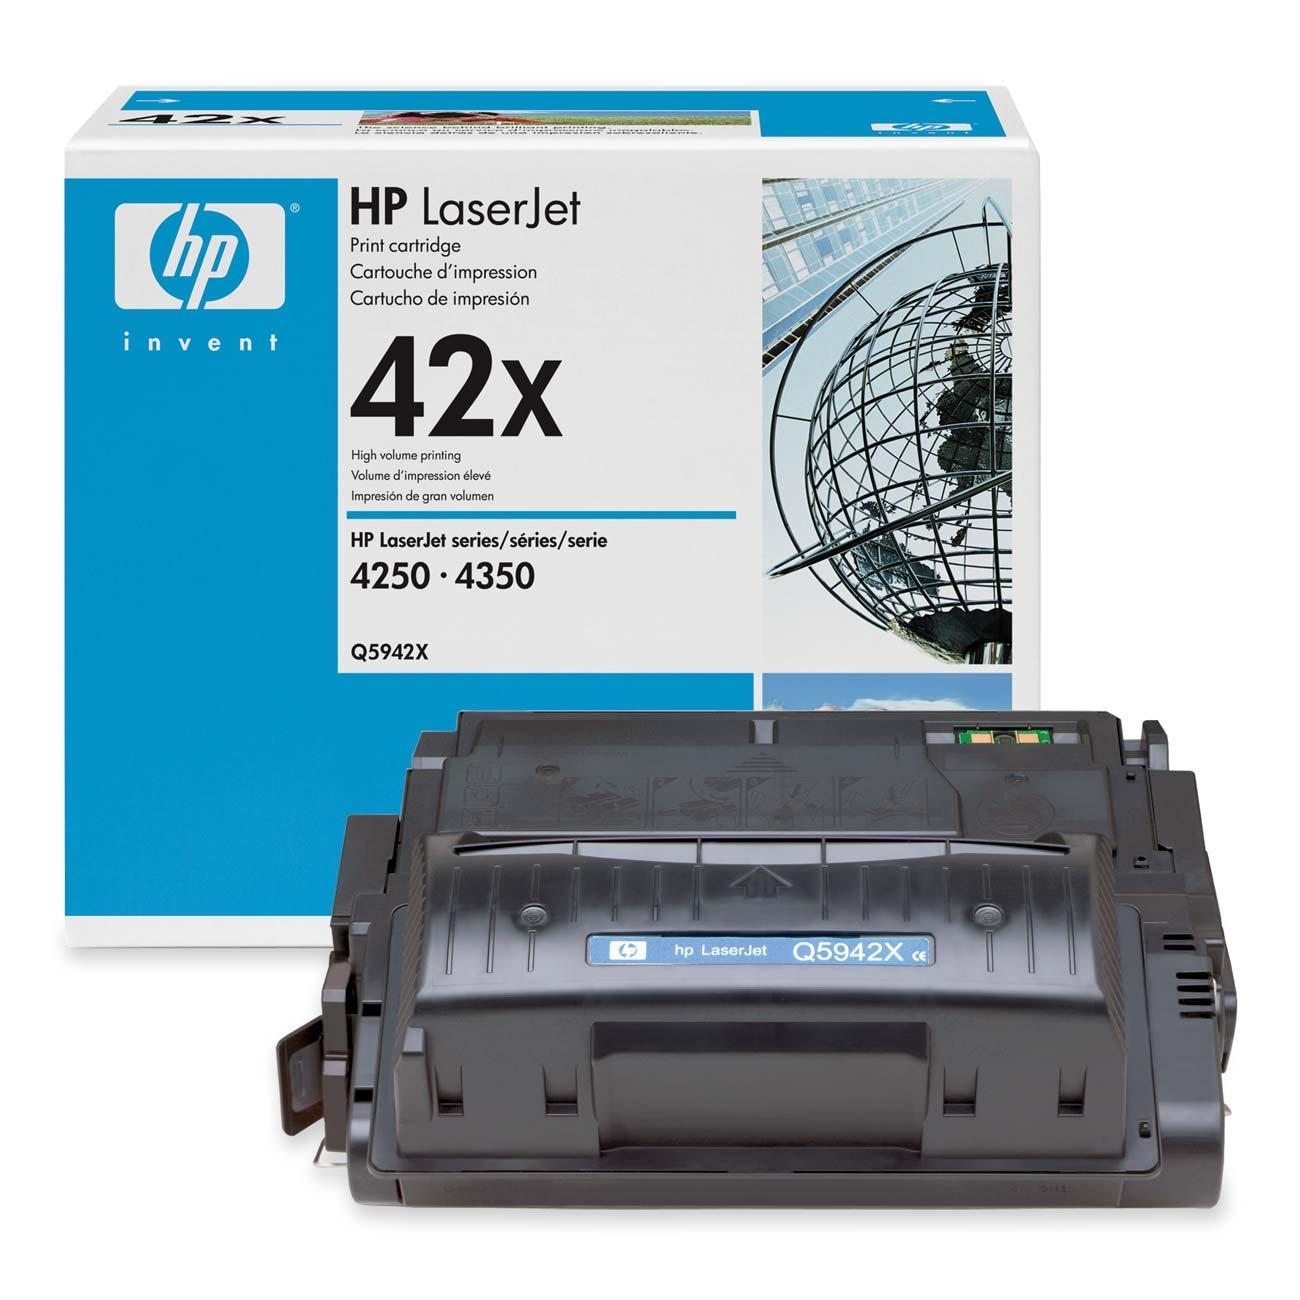 Hp 678 Black Ink Catridge Cz107aa Original Q5942x 42x Toner For Laser Printer Portable Engineering